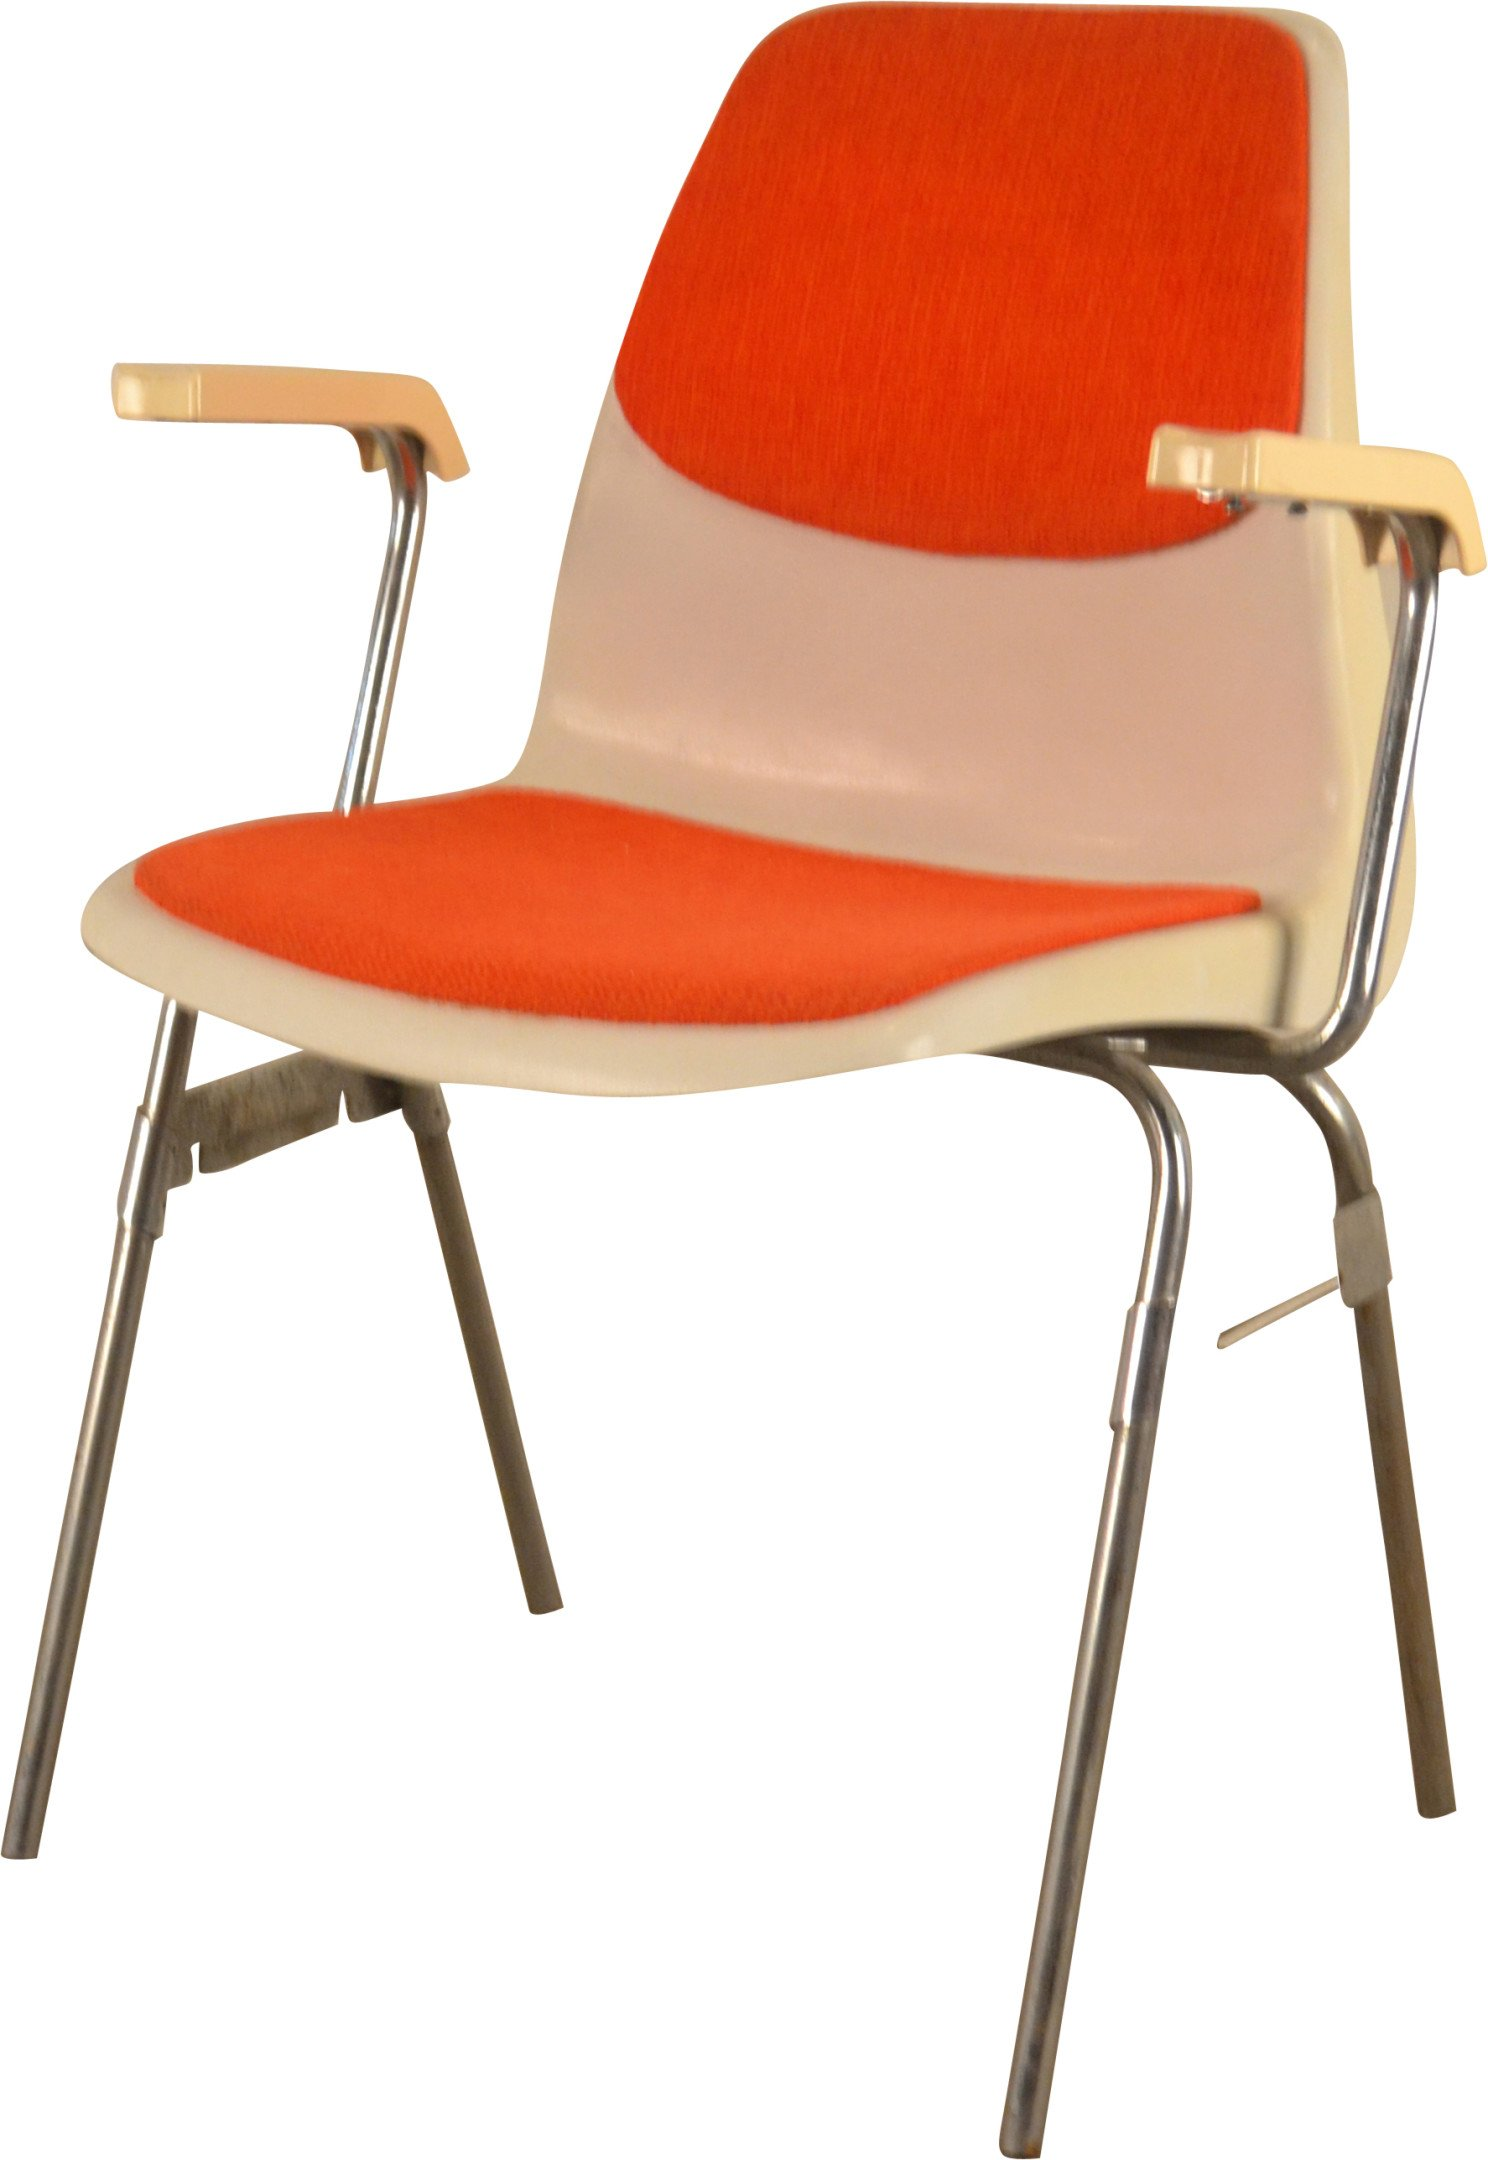 Chair, Lubke, Germany, 1970s